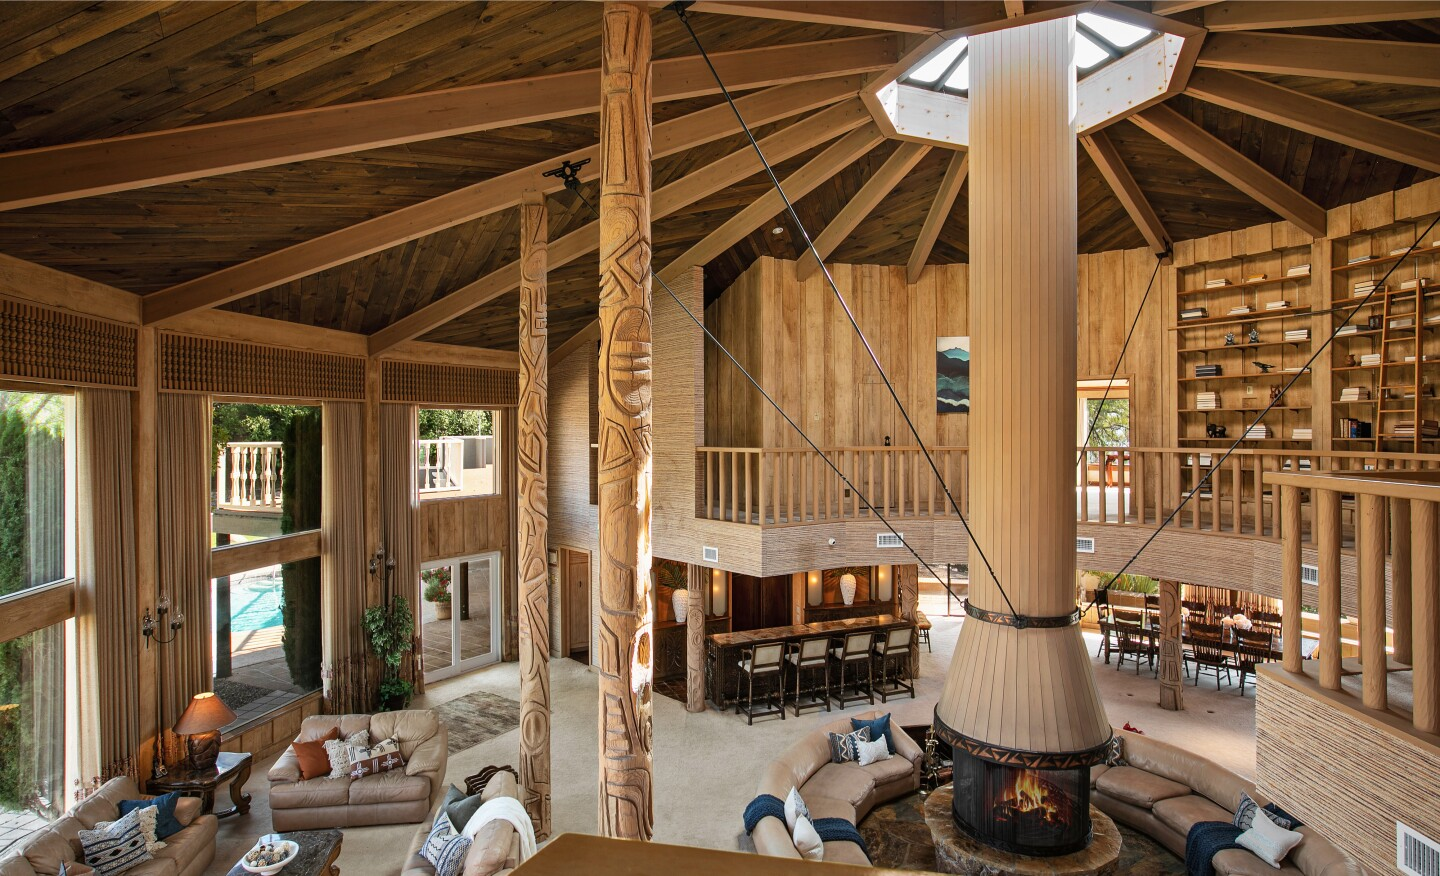 Capable of hosting 100 guests, the 554-acre ranch centers on a 17,000-square-foot lodge with a commercial kitchen, massive dining room and conference hall.